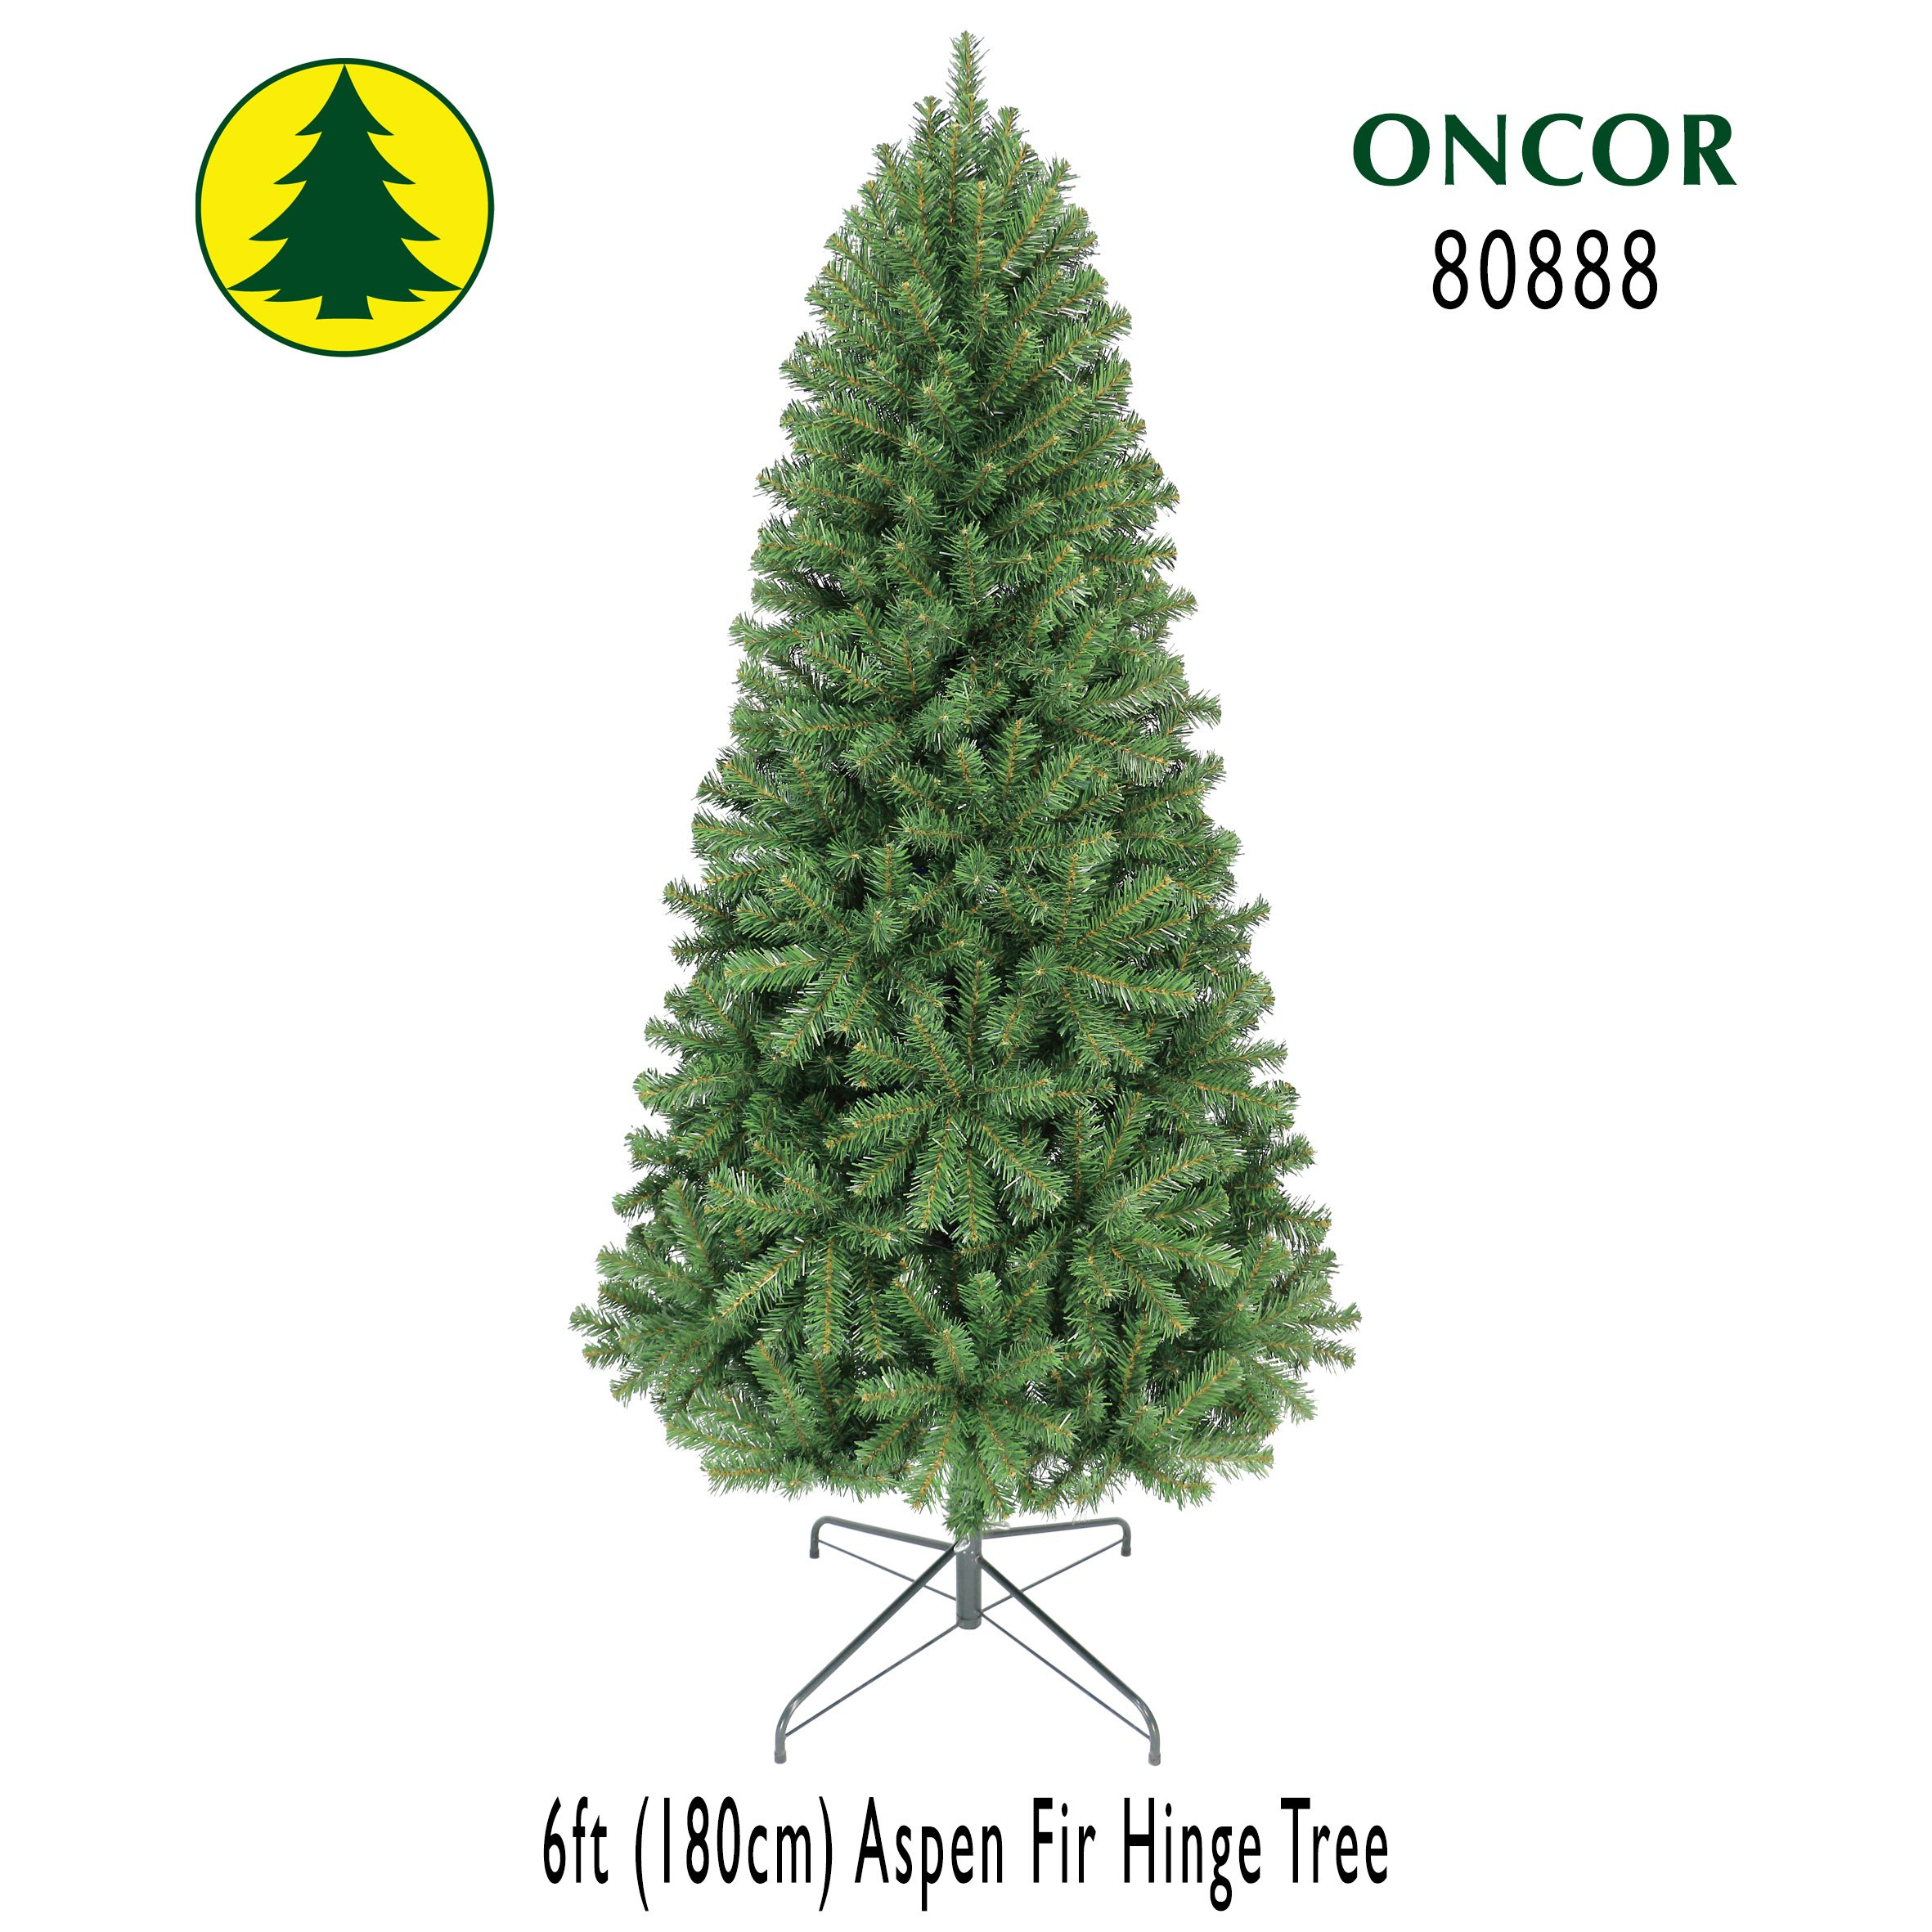 Oncor 6ft Eco-Friendly Aspen Fir Christmas Tree